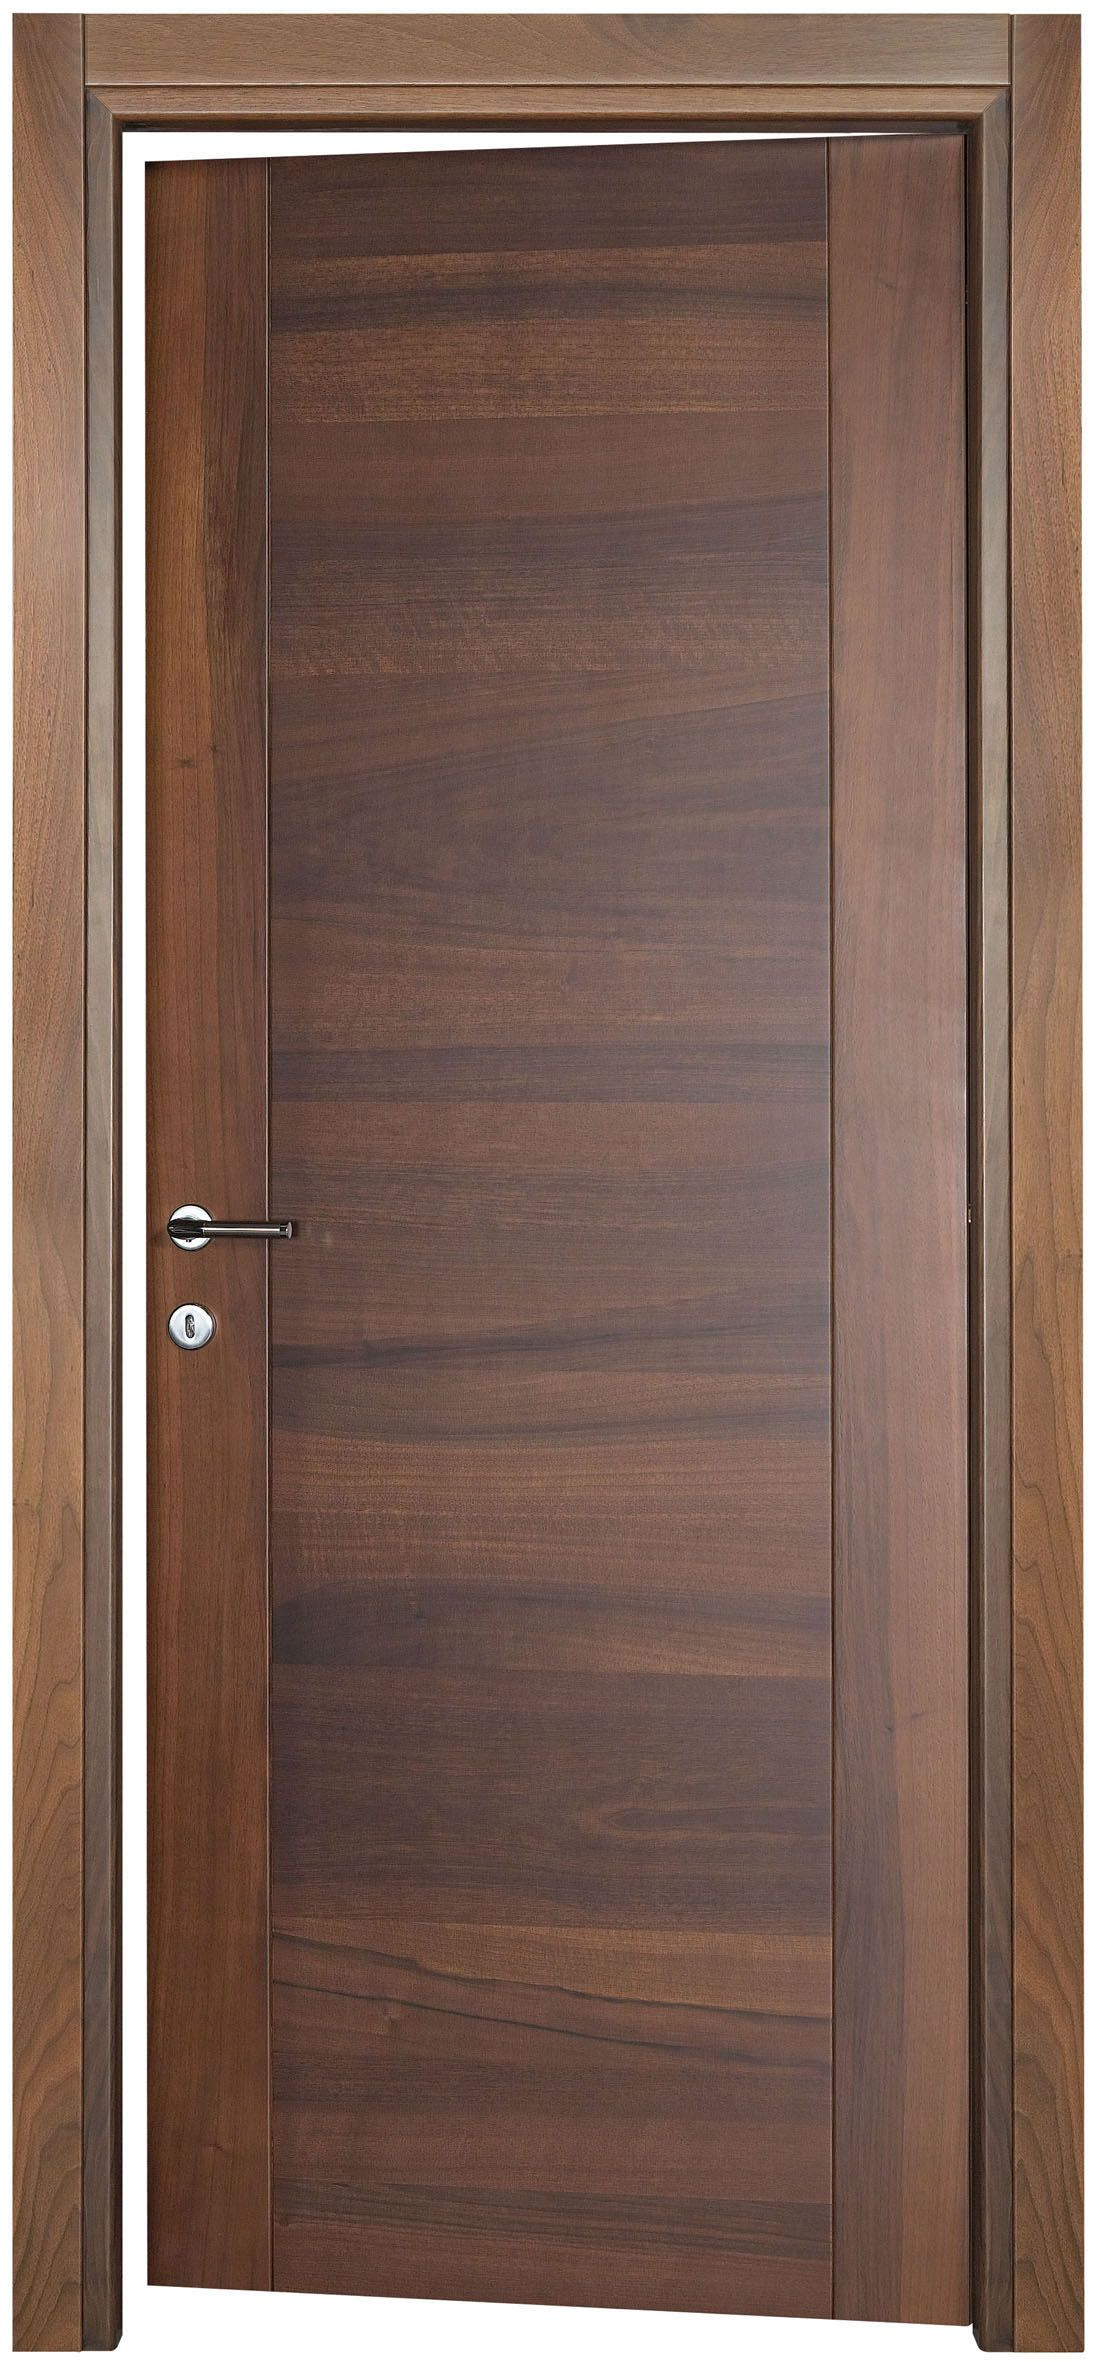 Wooden Internal Doors With: Interior Door Styles, Door Design